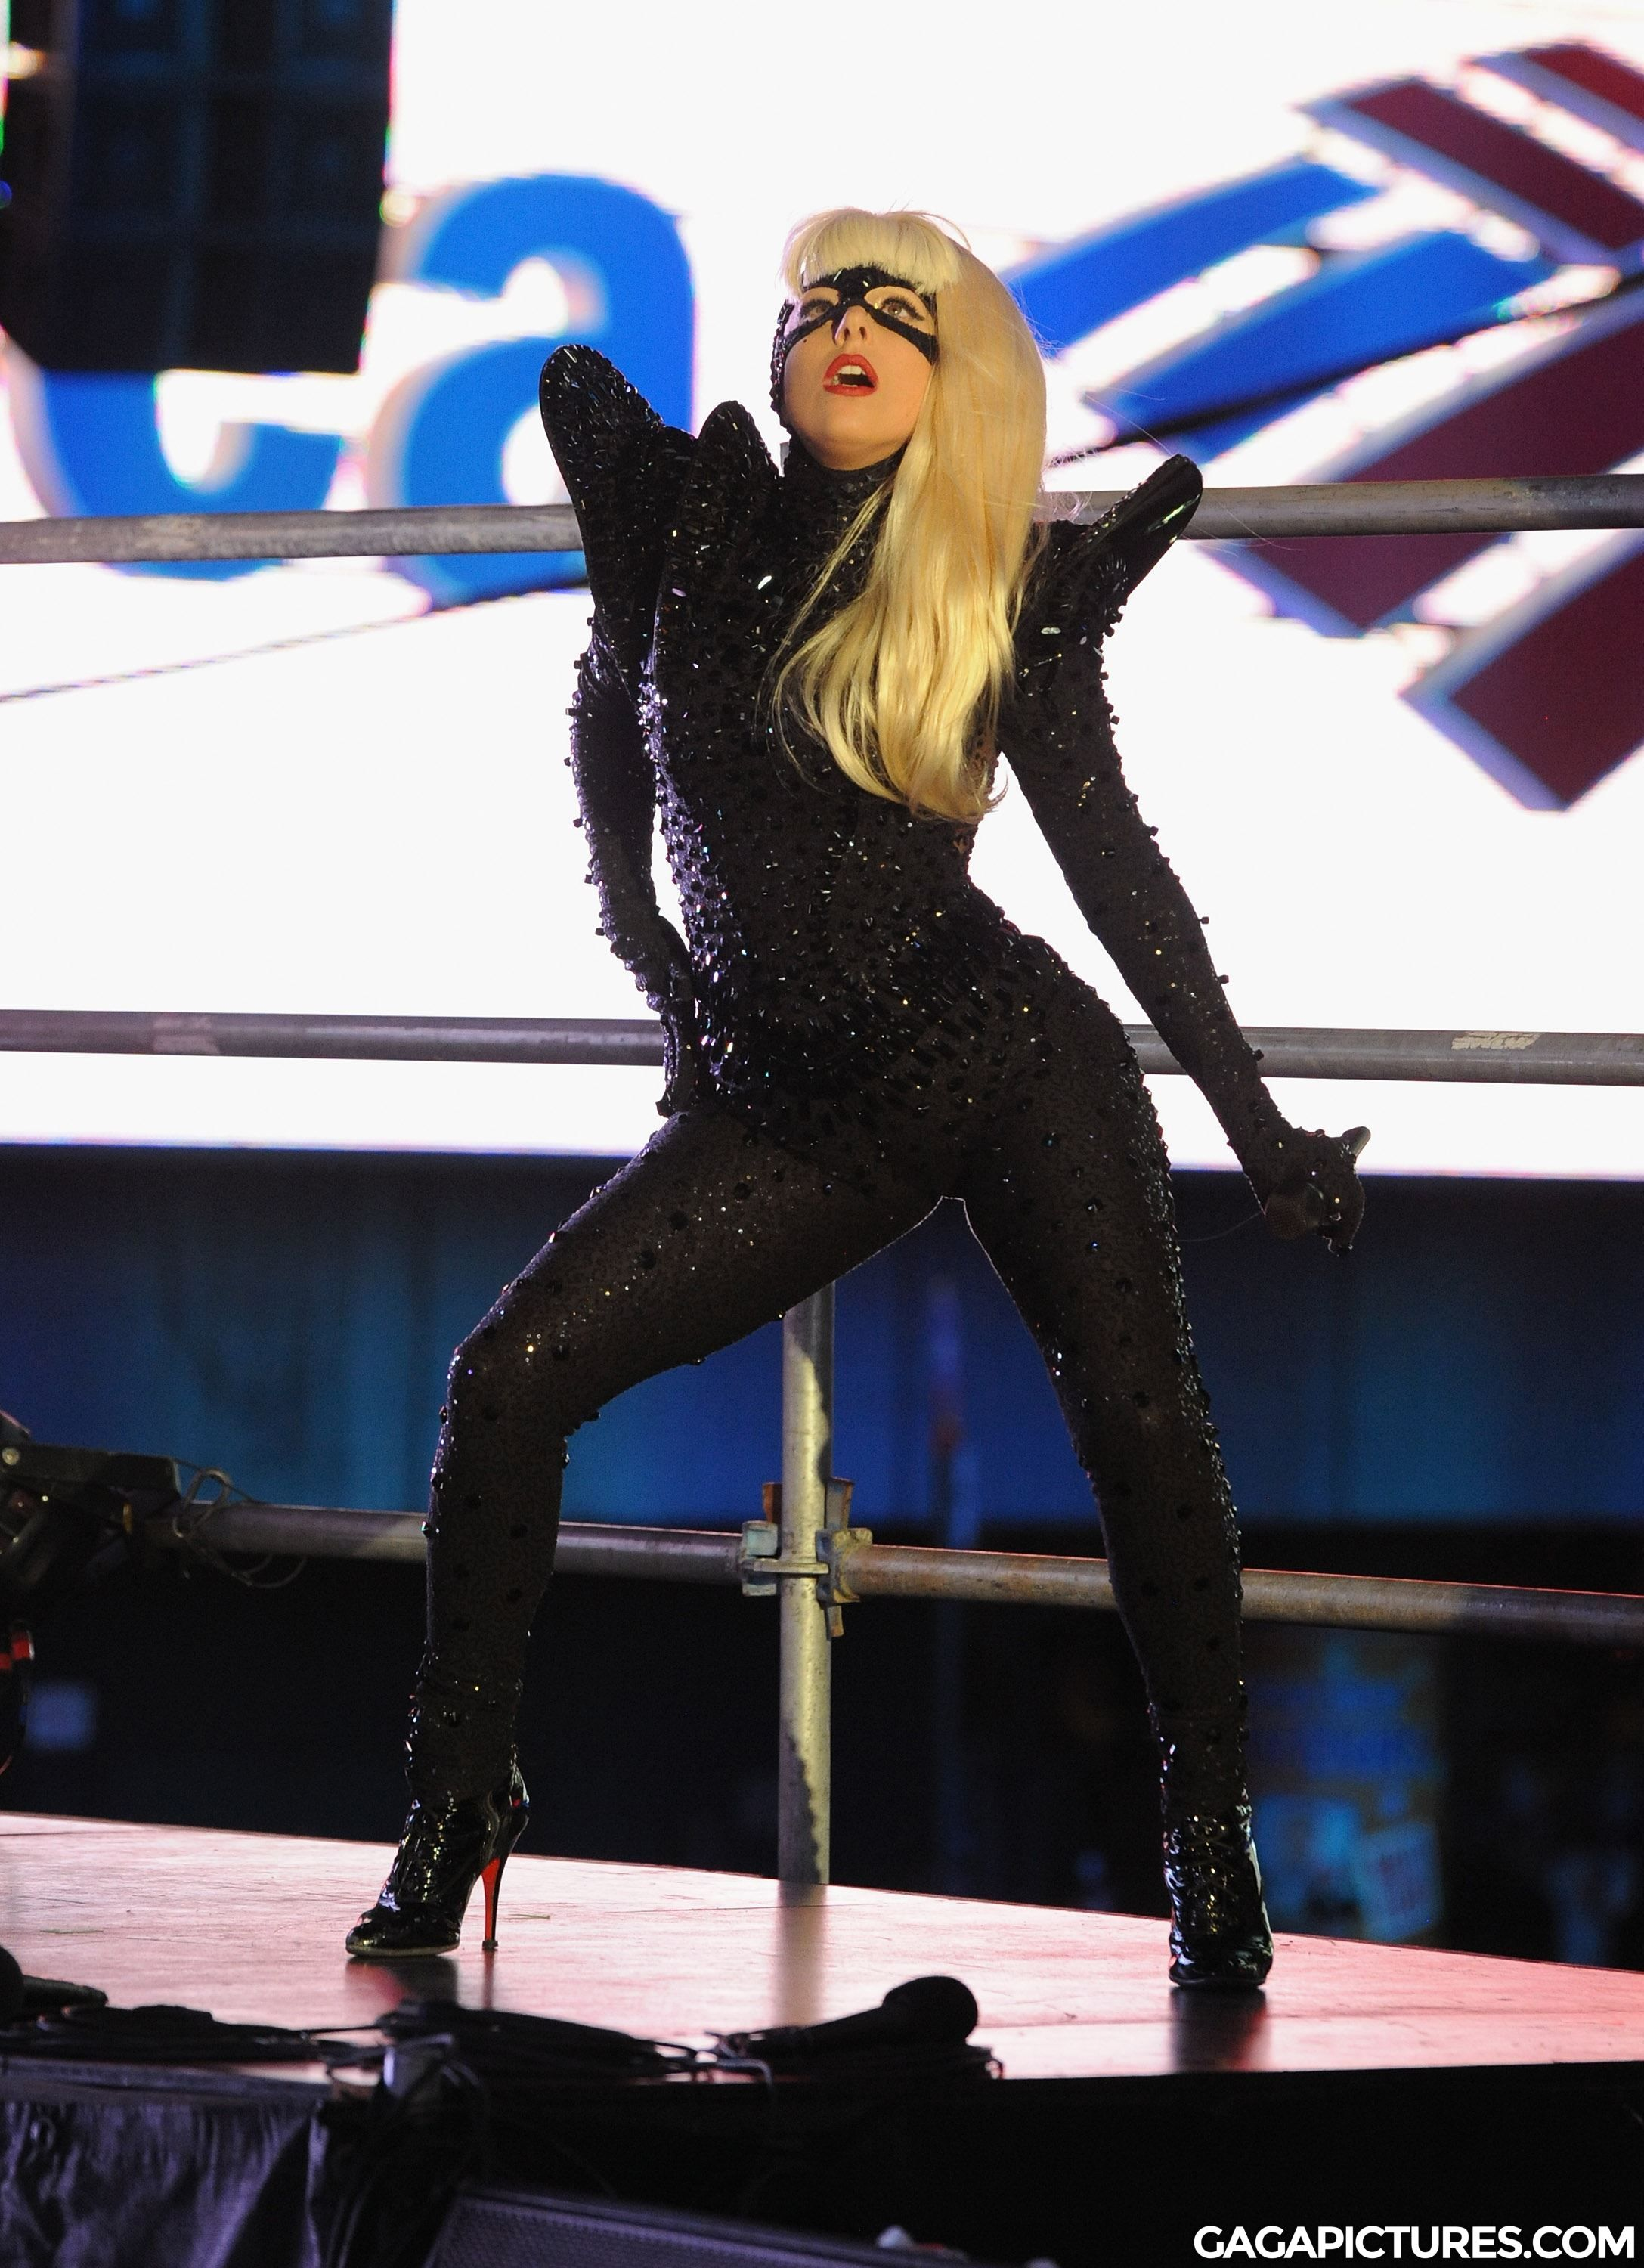 File:12-31-11 Times Square Performance 3.jpg